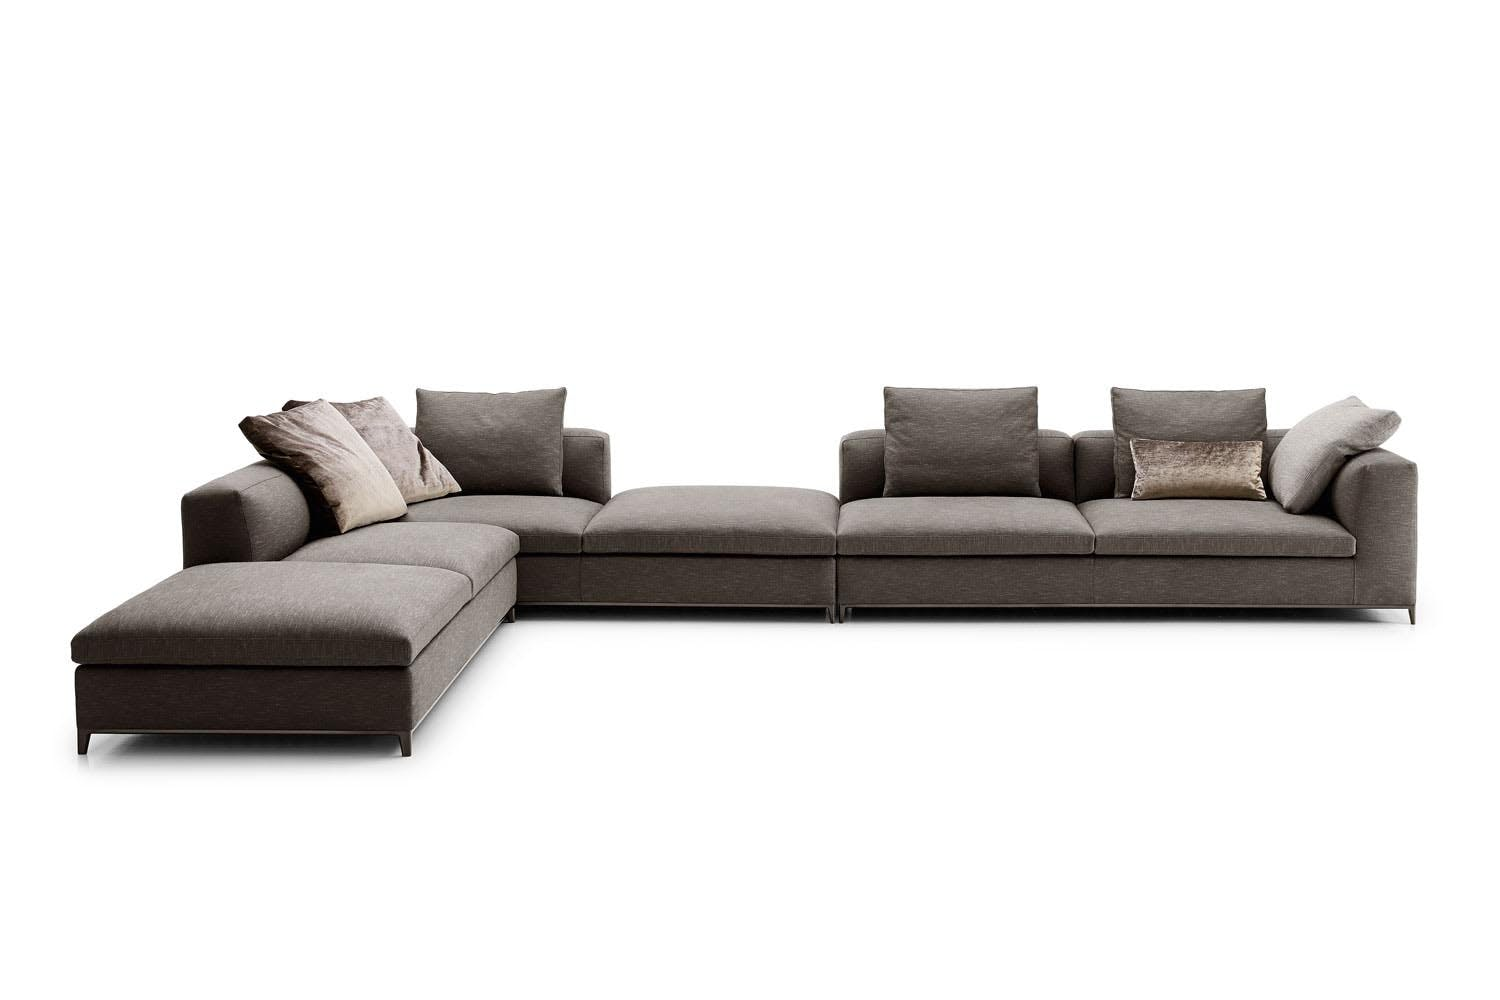 michel club sofa by antonio citterio for b b italia space furniture. Black Bedroom Furniture Sets. Home Design Ideas